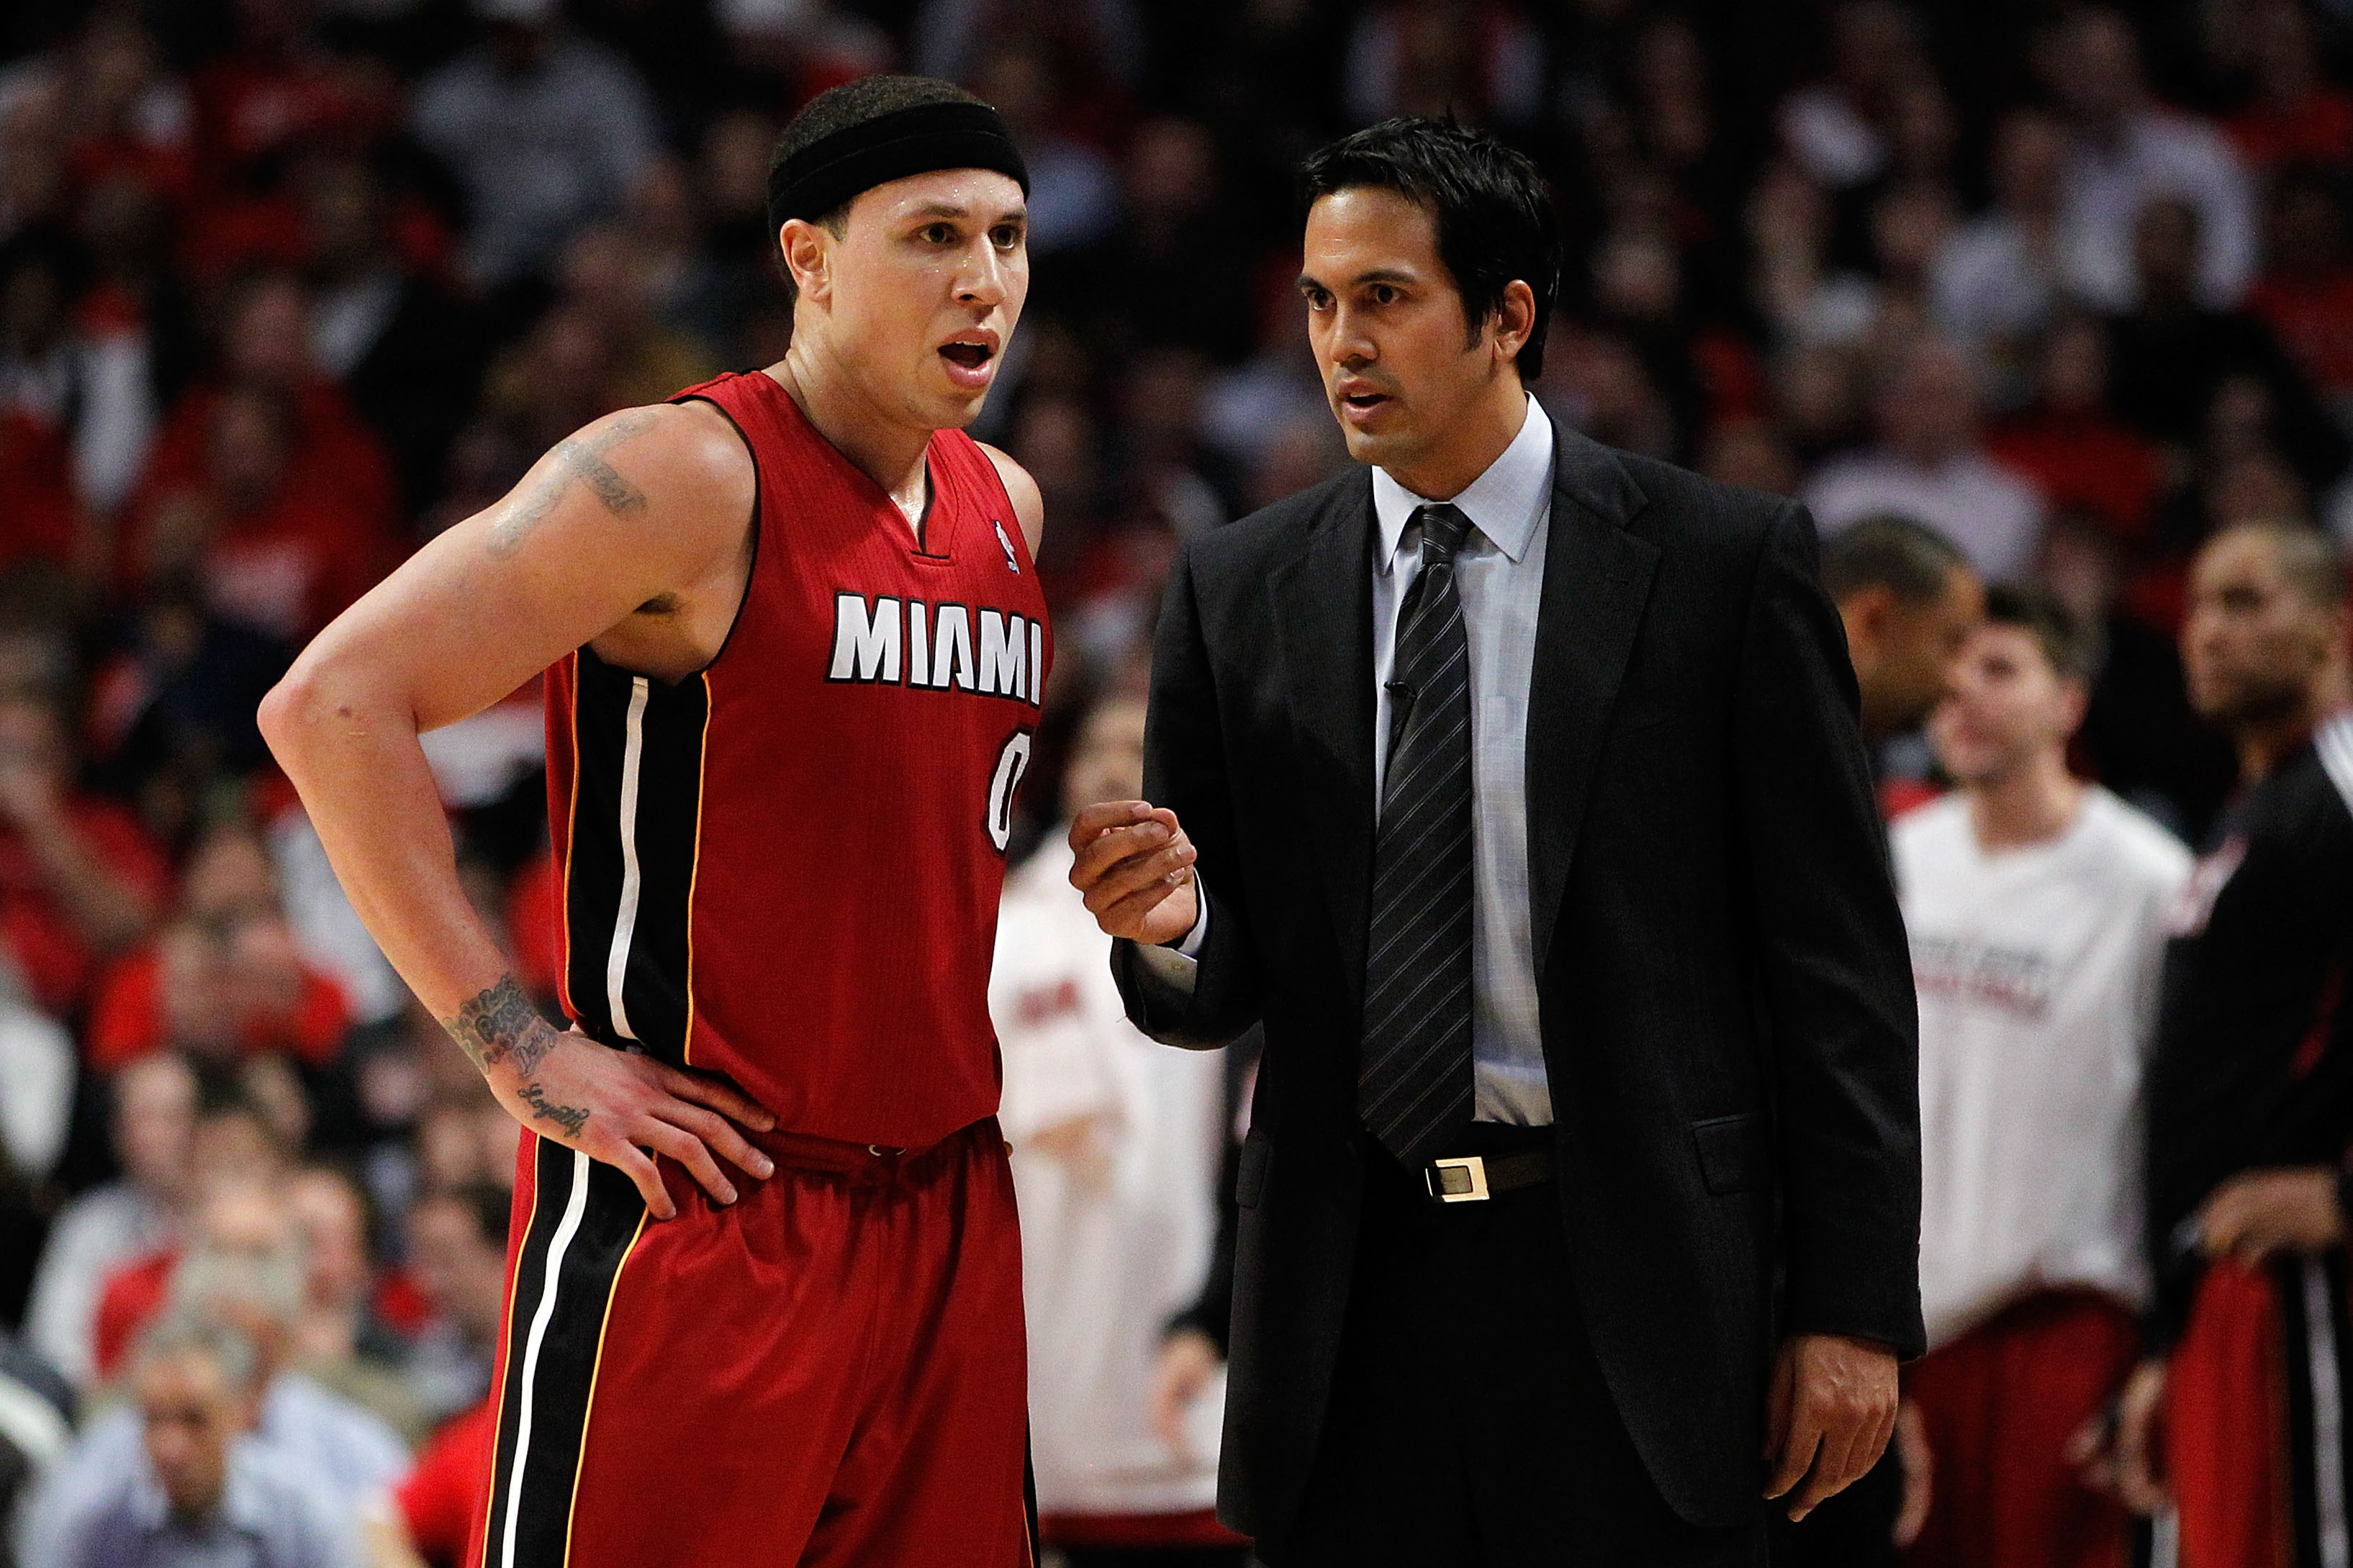 CHICAGO, IL - MAY 18:  (L-R) Mike Bibby #0 and head coach Erik Spoelstra of the Miami Heat against the Chicago Bulls in Game Two of the Eastern Conference Finals during the 2011 NBA Playoffs on May 18, 2011 at the United Center in Chicago, Illinois. NOTE